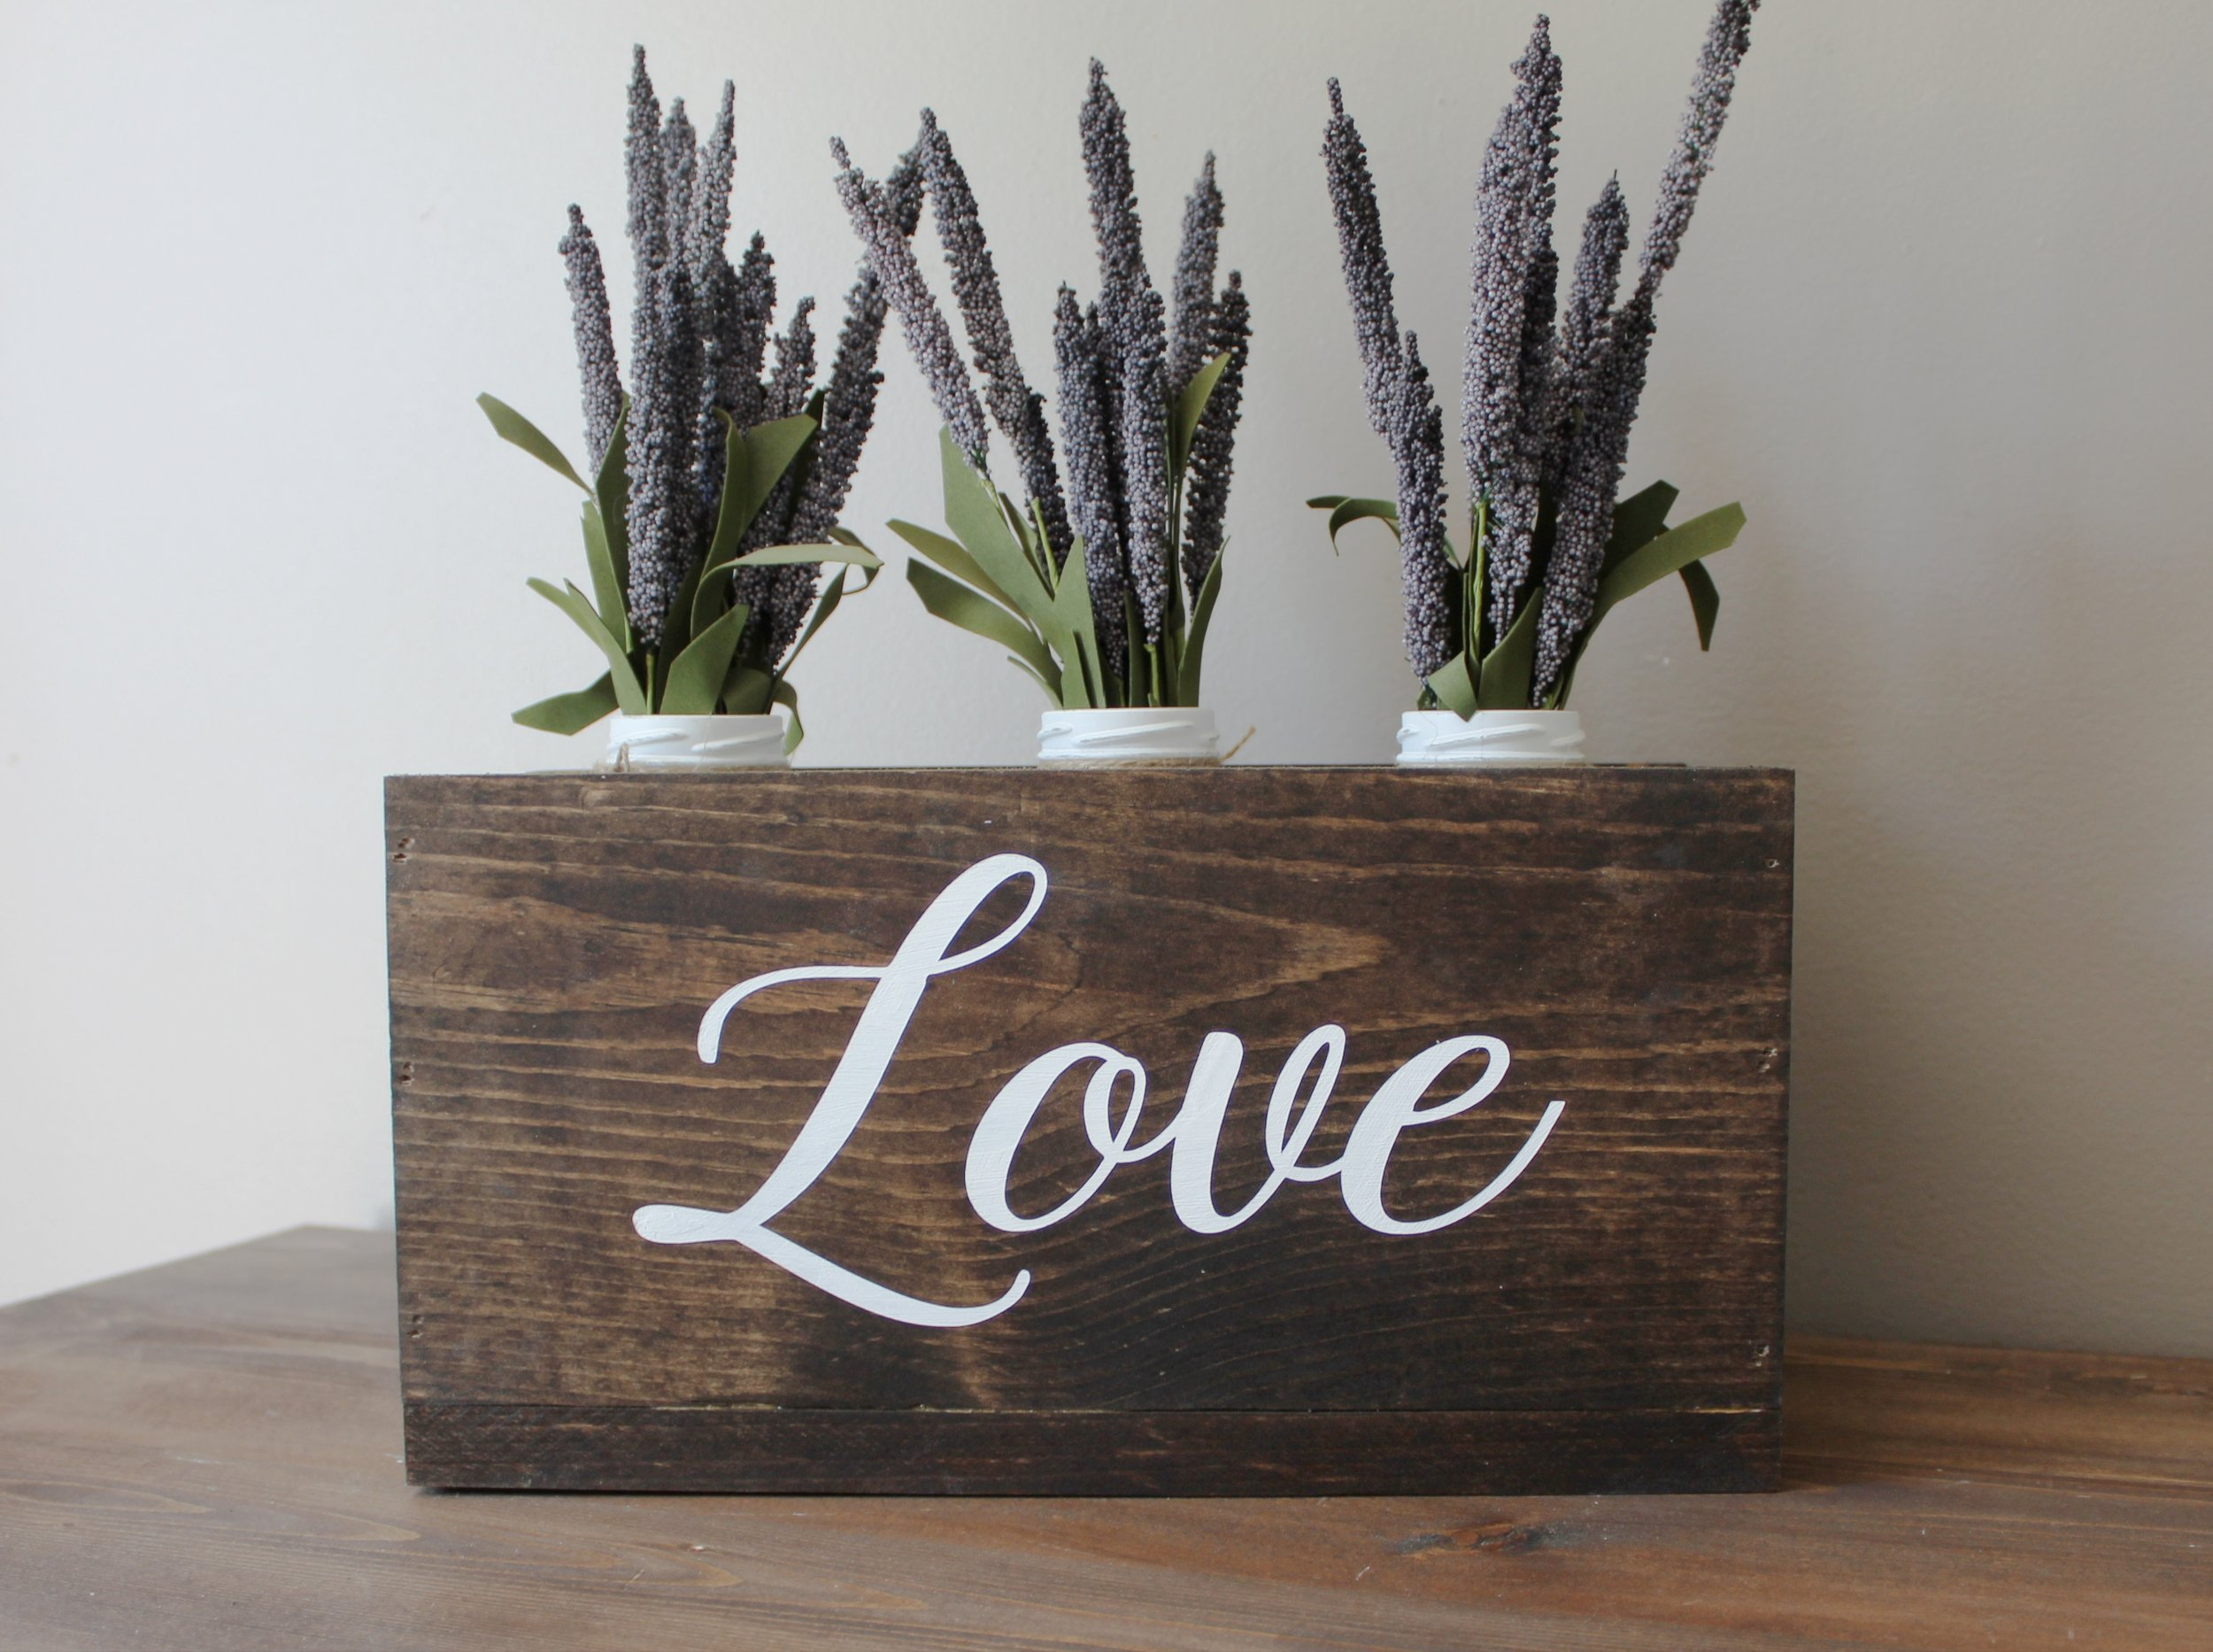 This custom wood box is perfect for your home, wedding decor, or a personal wedding gift! We would love to create one for you!